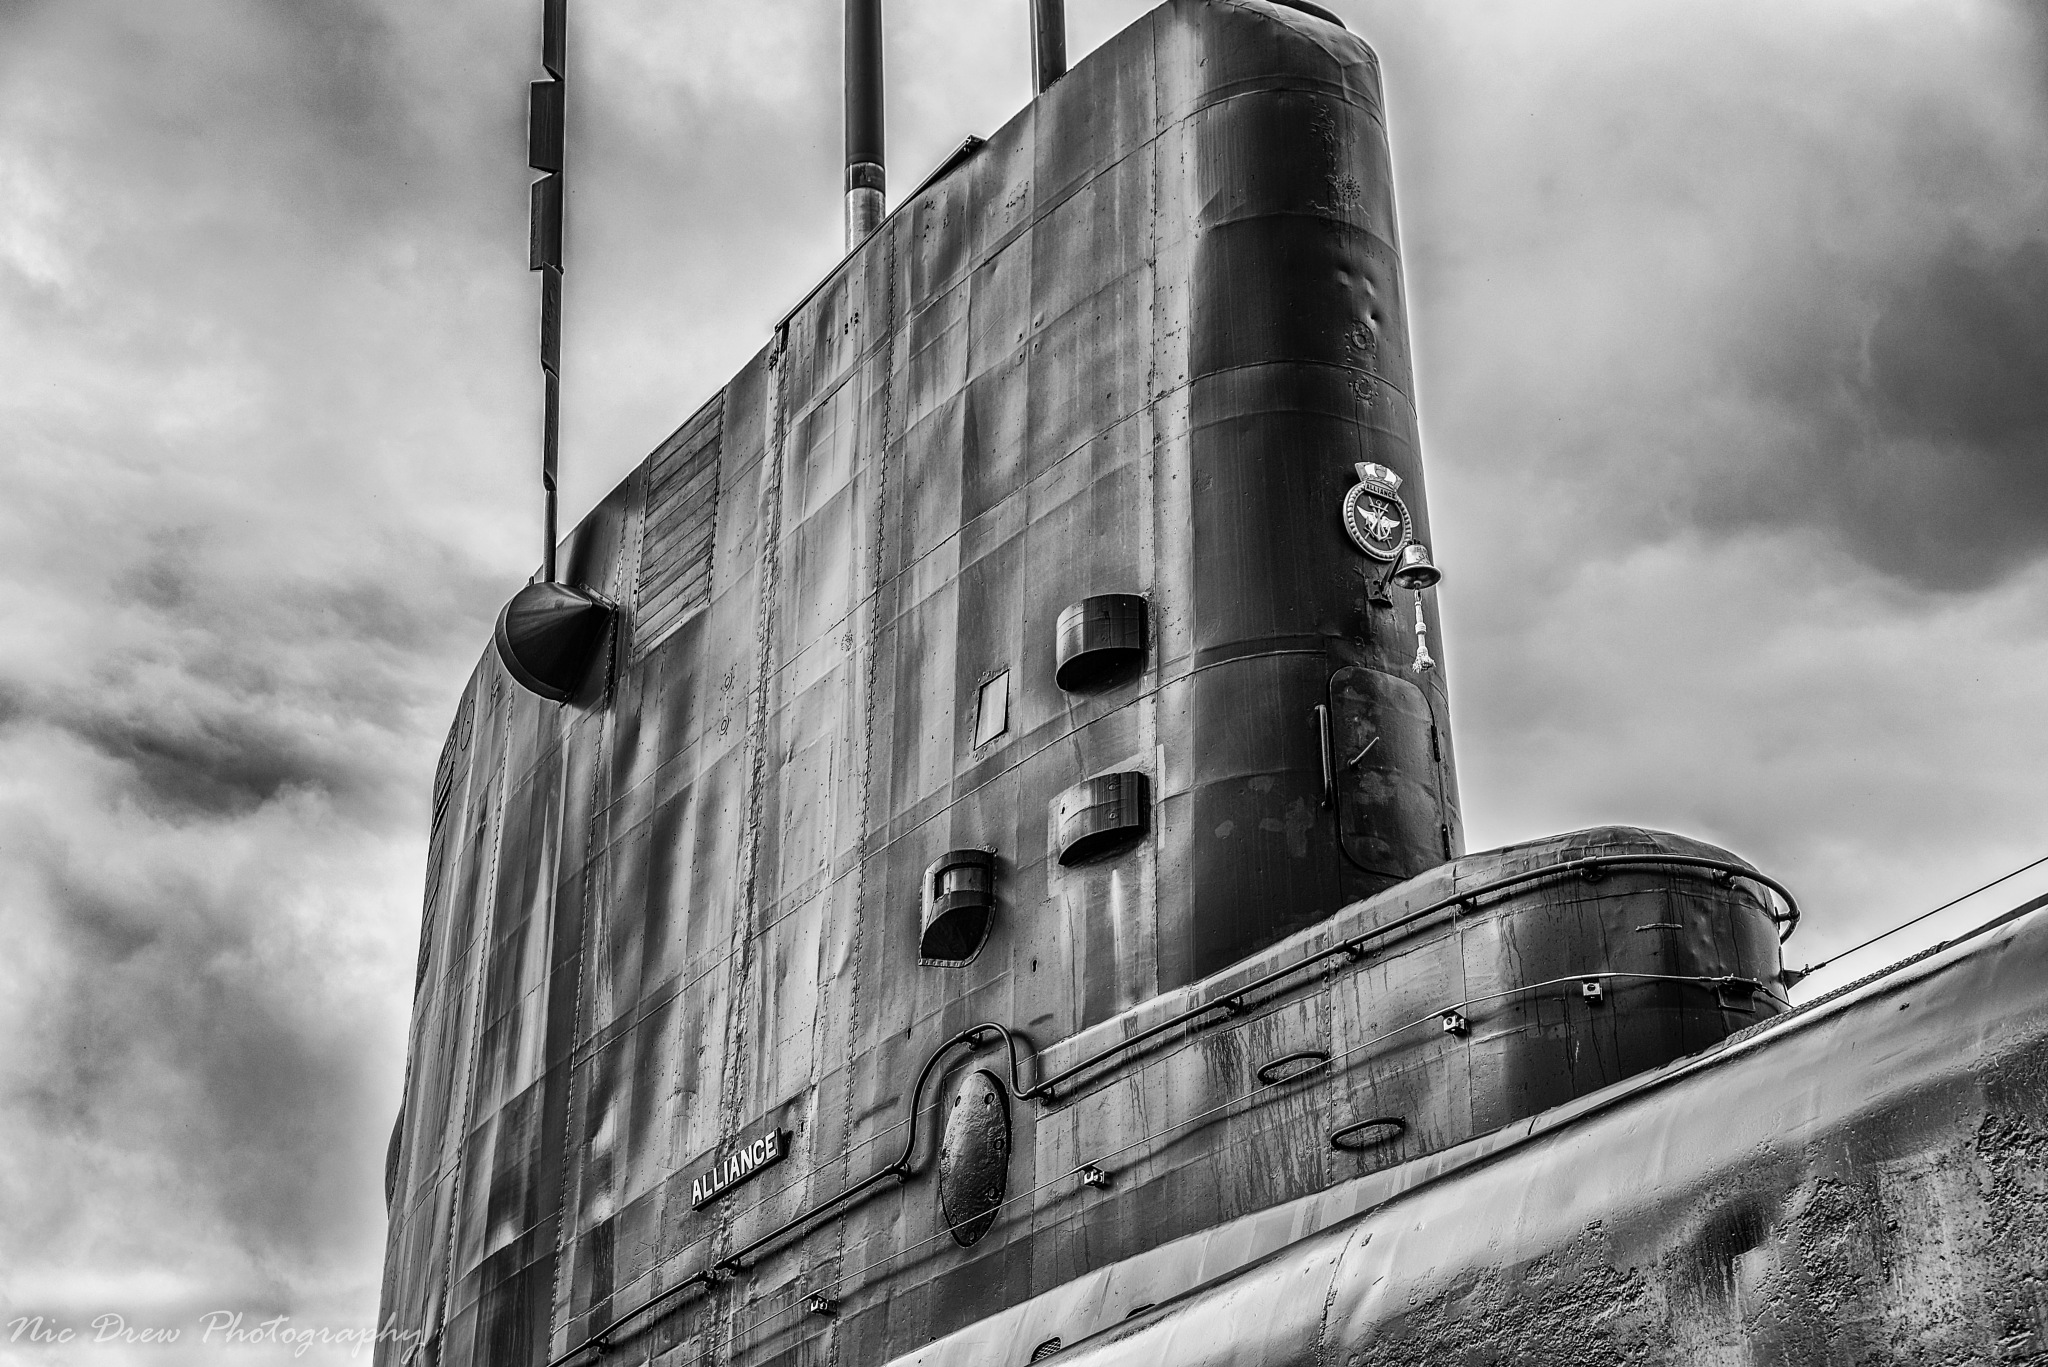 Submarine conning tower by Nic Drew